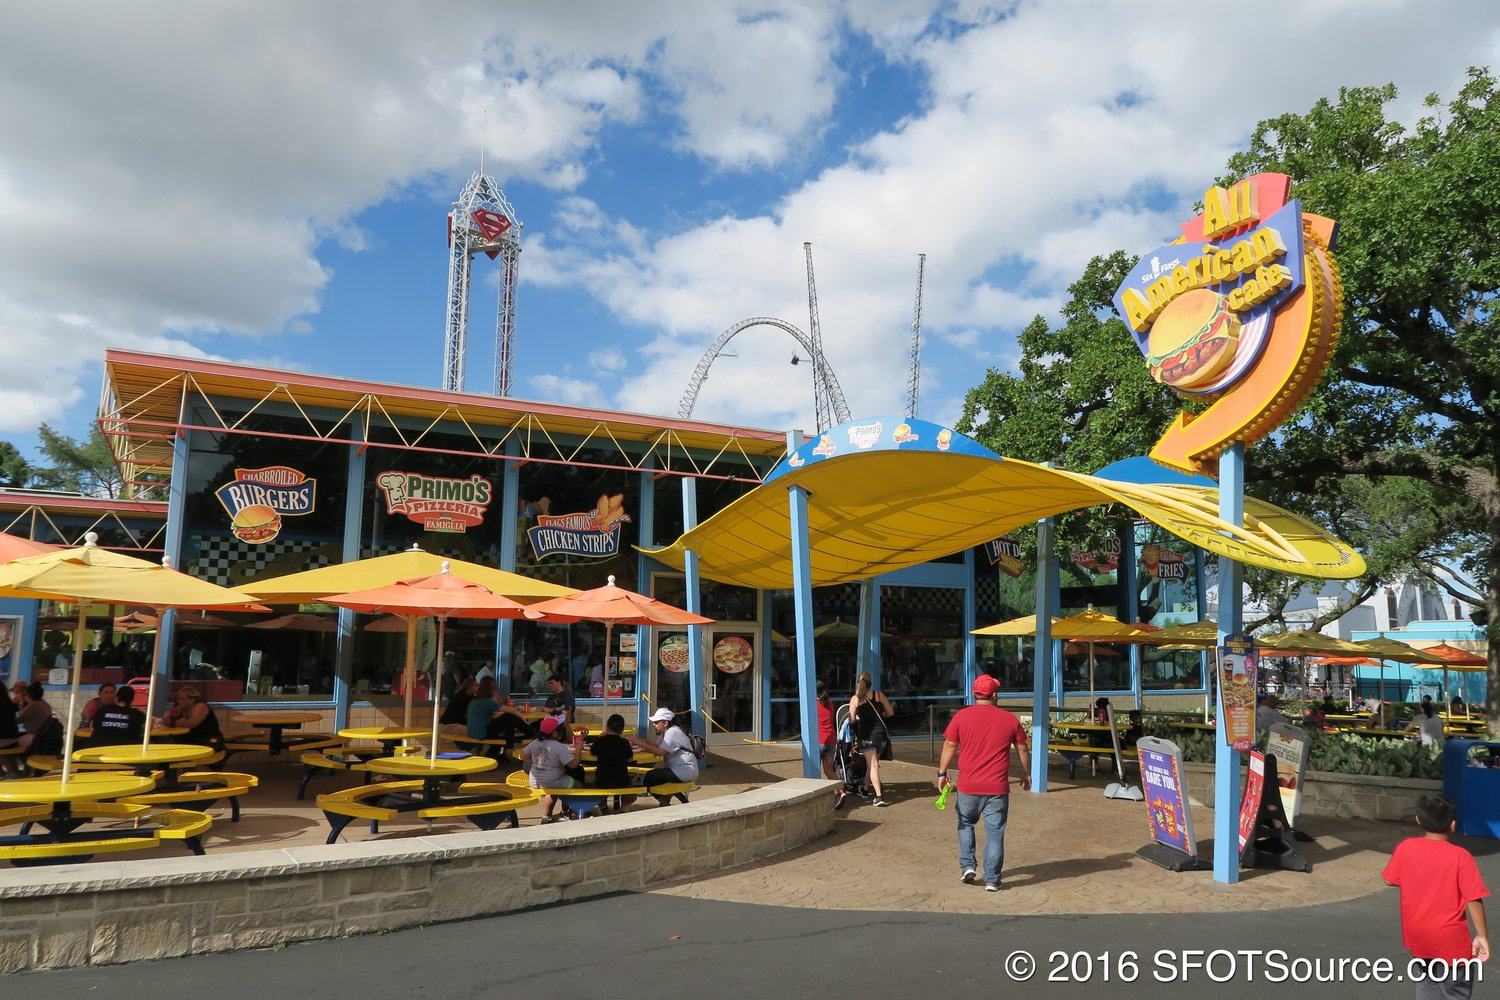 All American Cafe is located in the park's USA section.